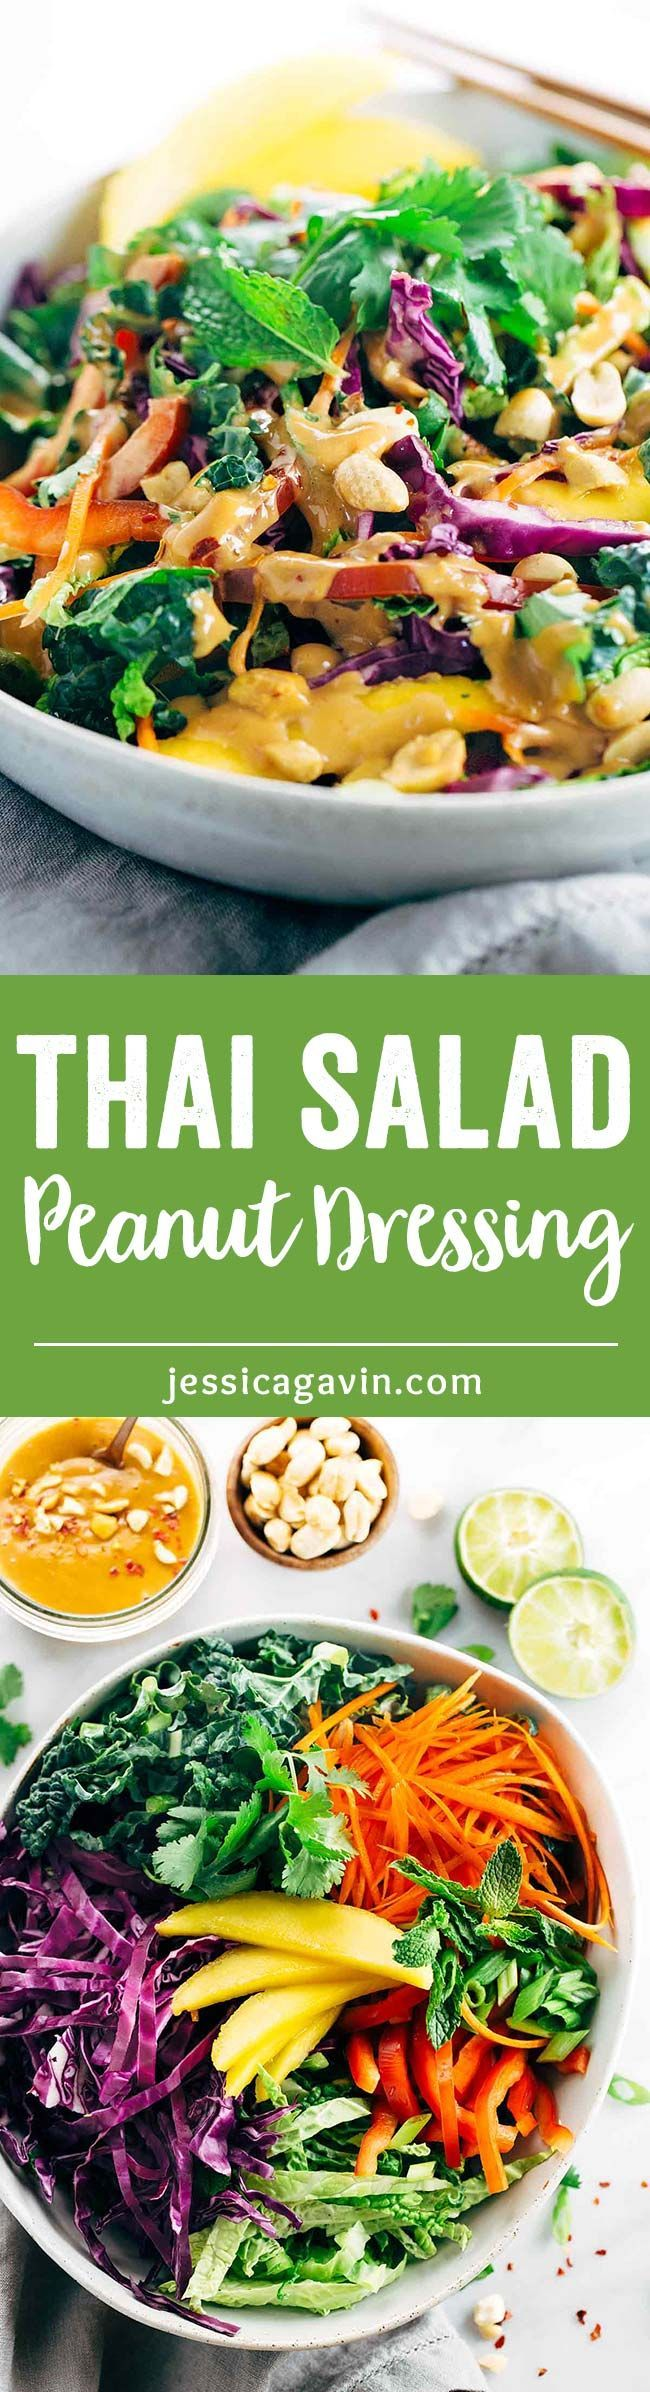 Crunchy Thai Salad Recipe with Creamy Peanut Dressing - Each bite is packs a powerhouse of fresh superfoods all in one irresistible bowl   jessicagavin.com